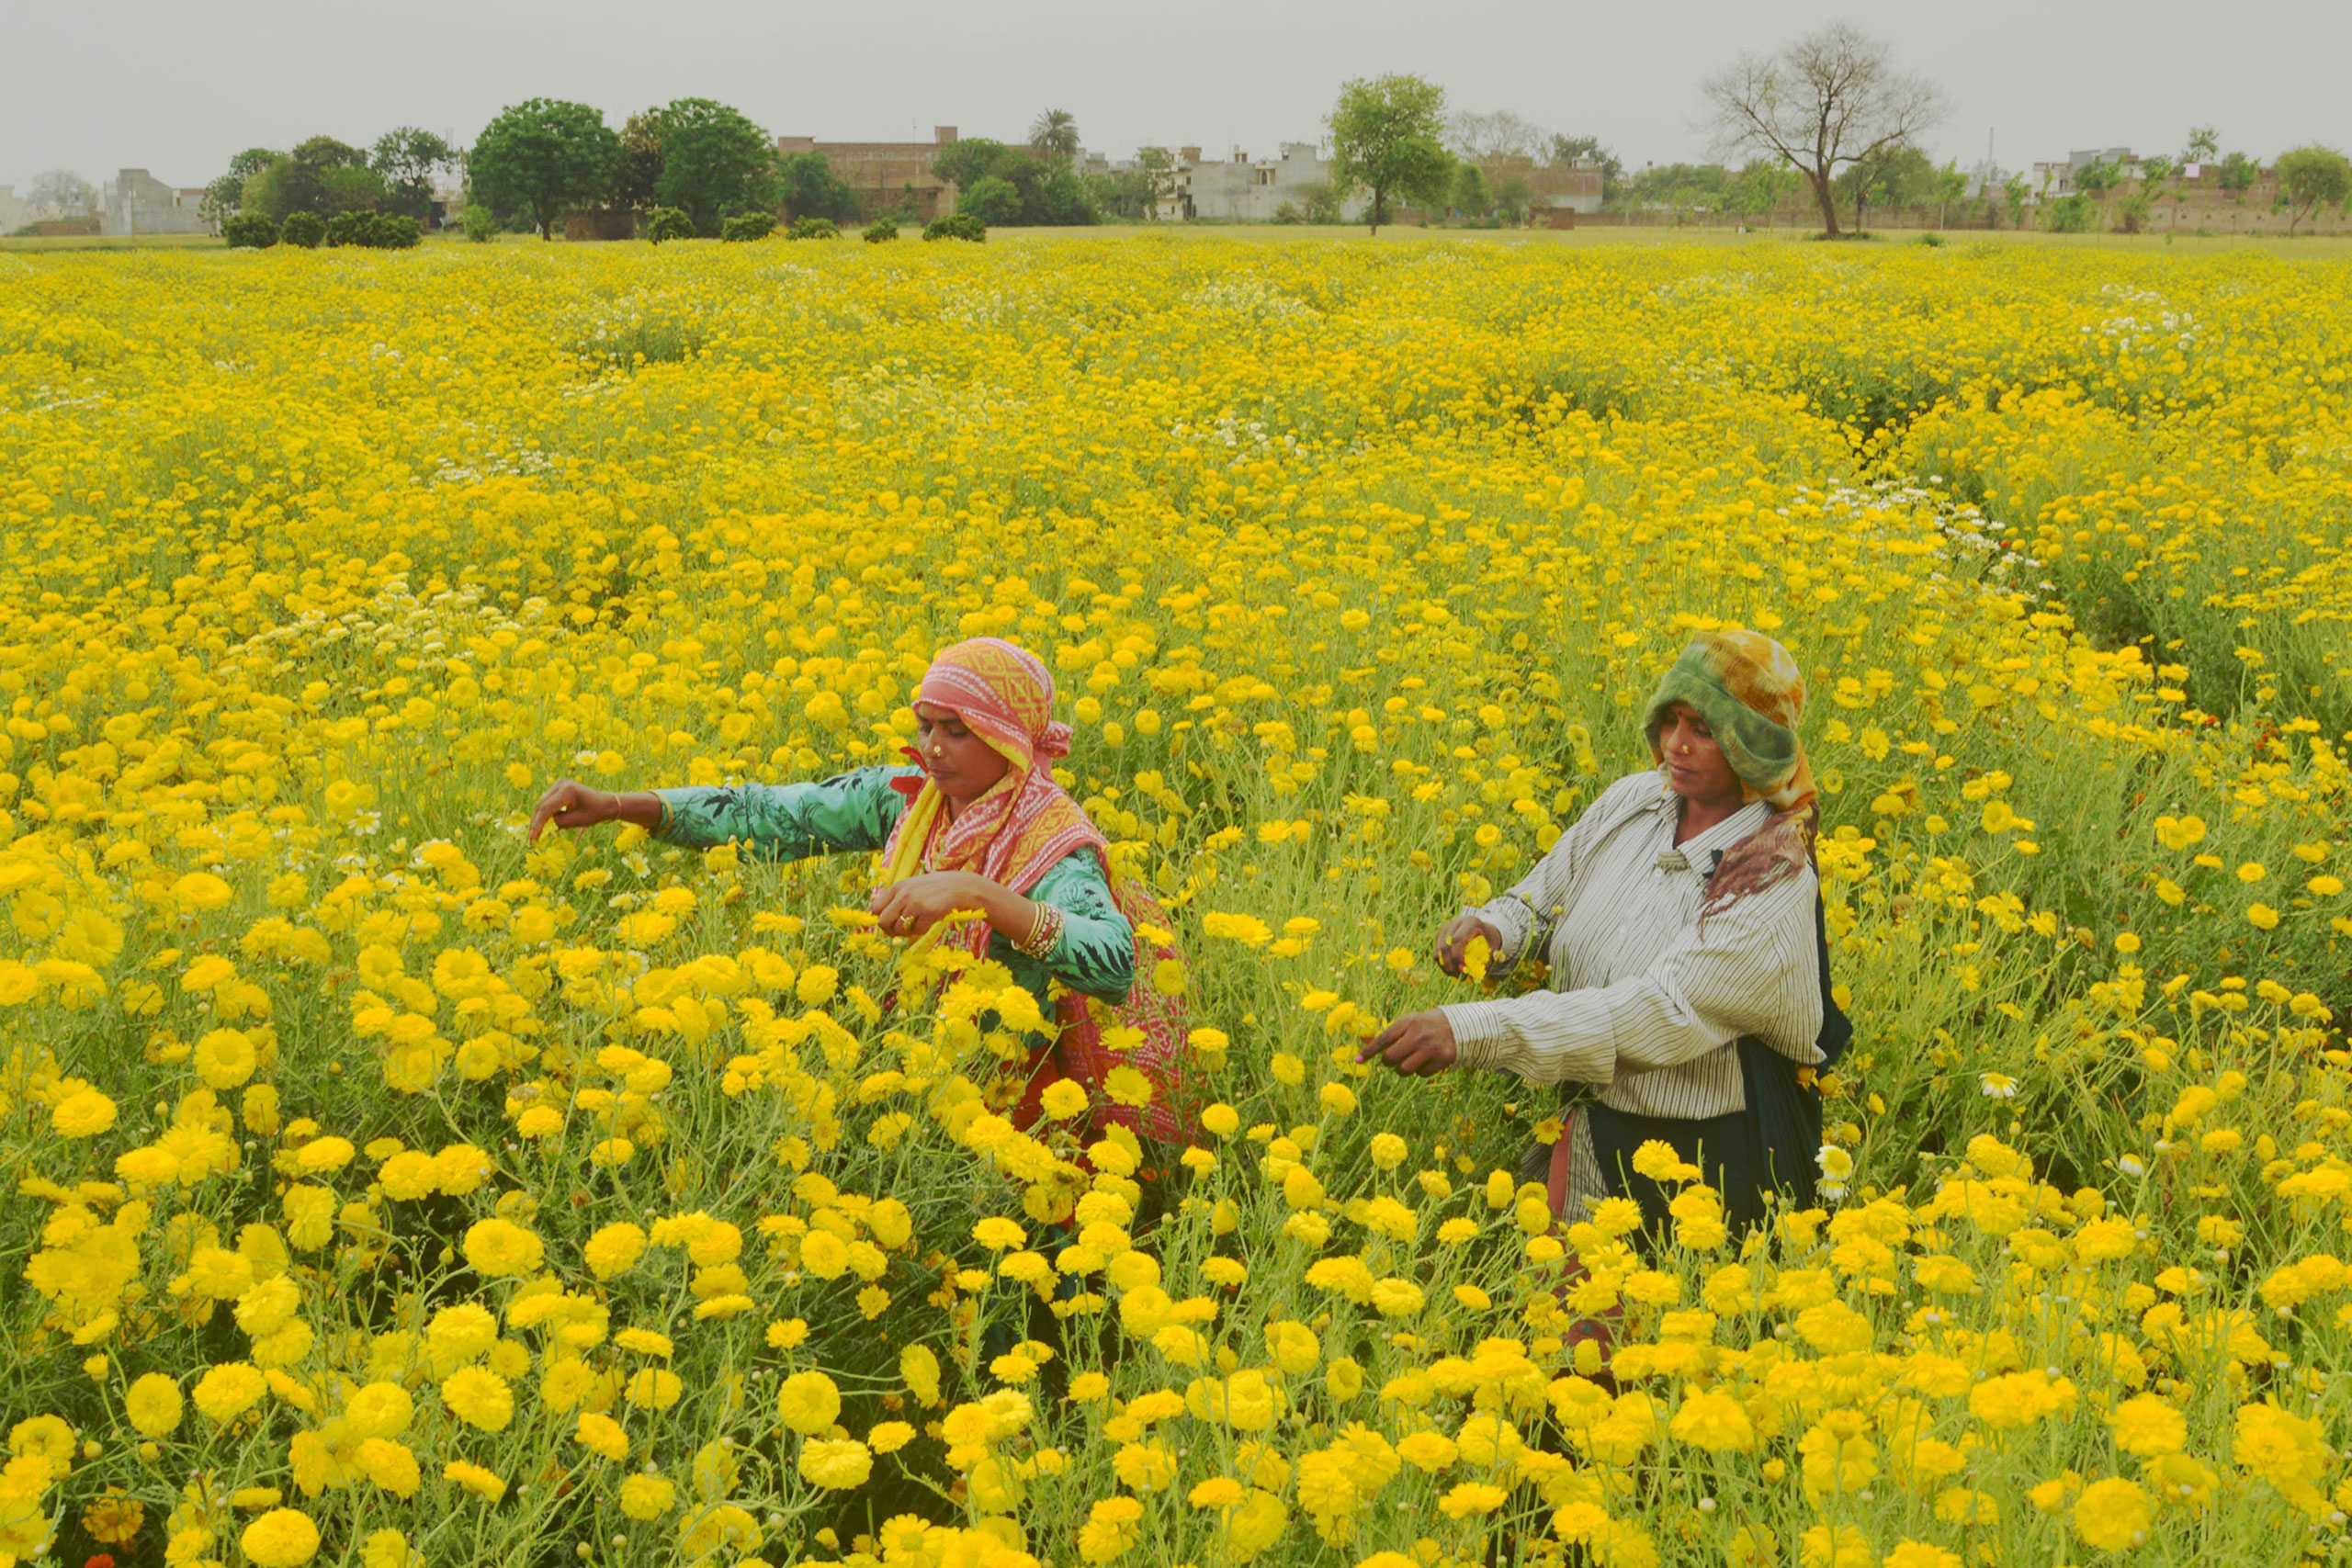 Indian laborers pick golden marguerite, or yellow chamomile, flowers in a field on the outskirts of Amritsar on April 6, 2017.